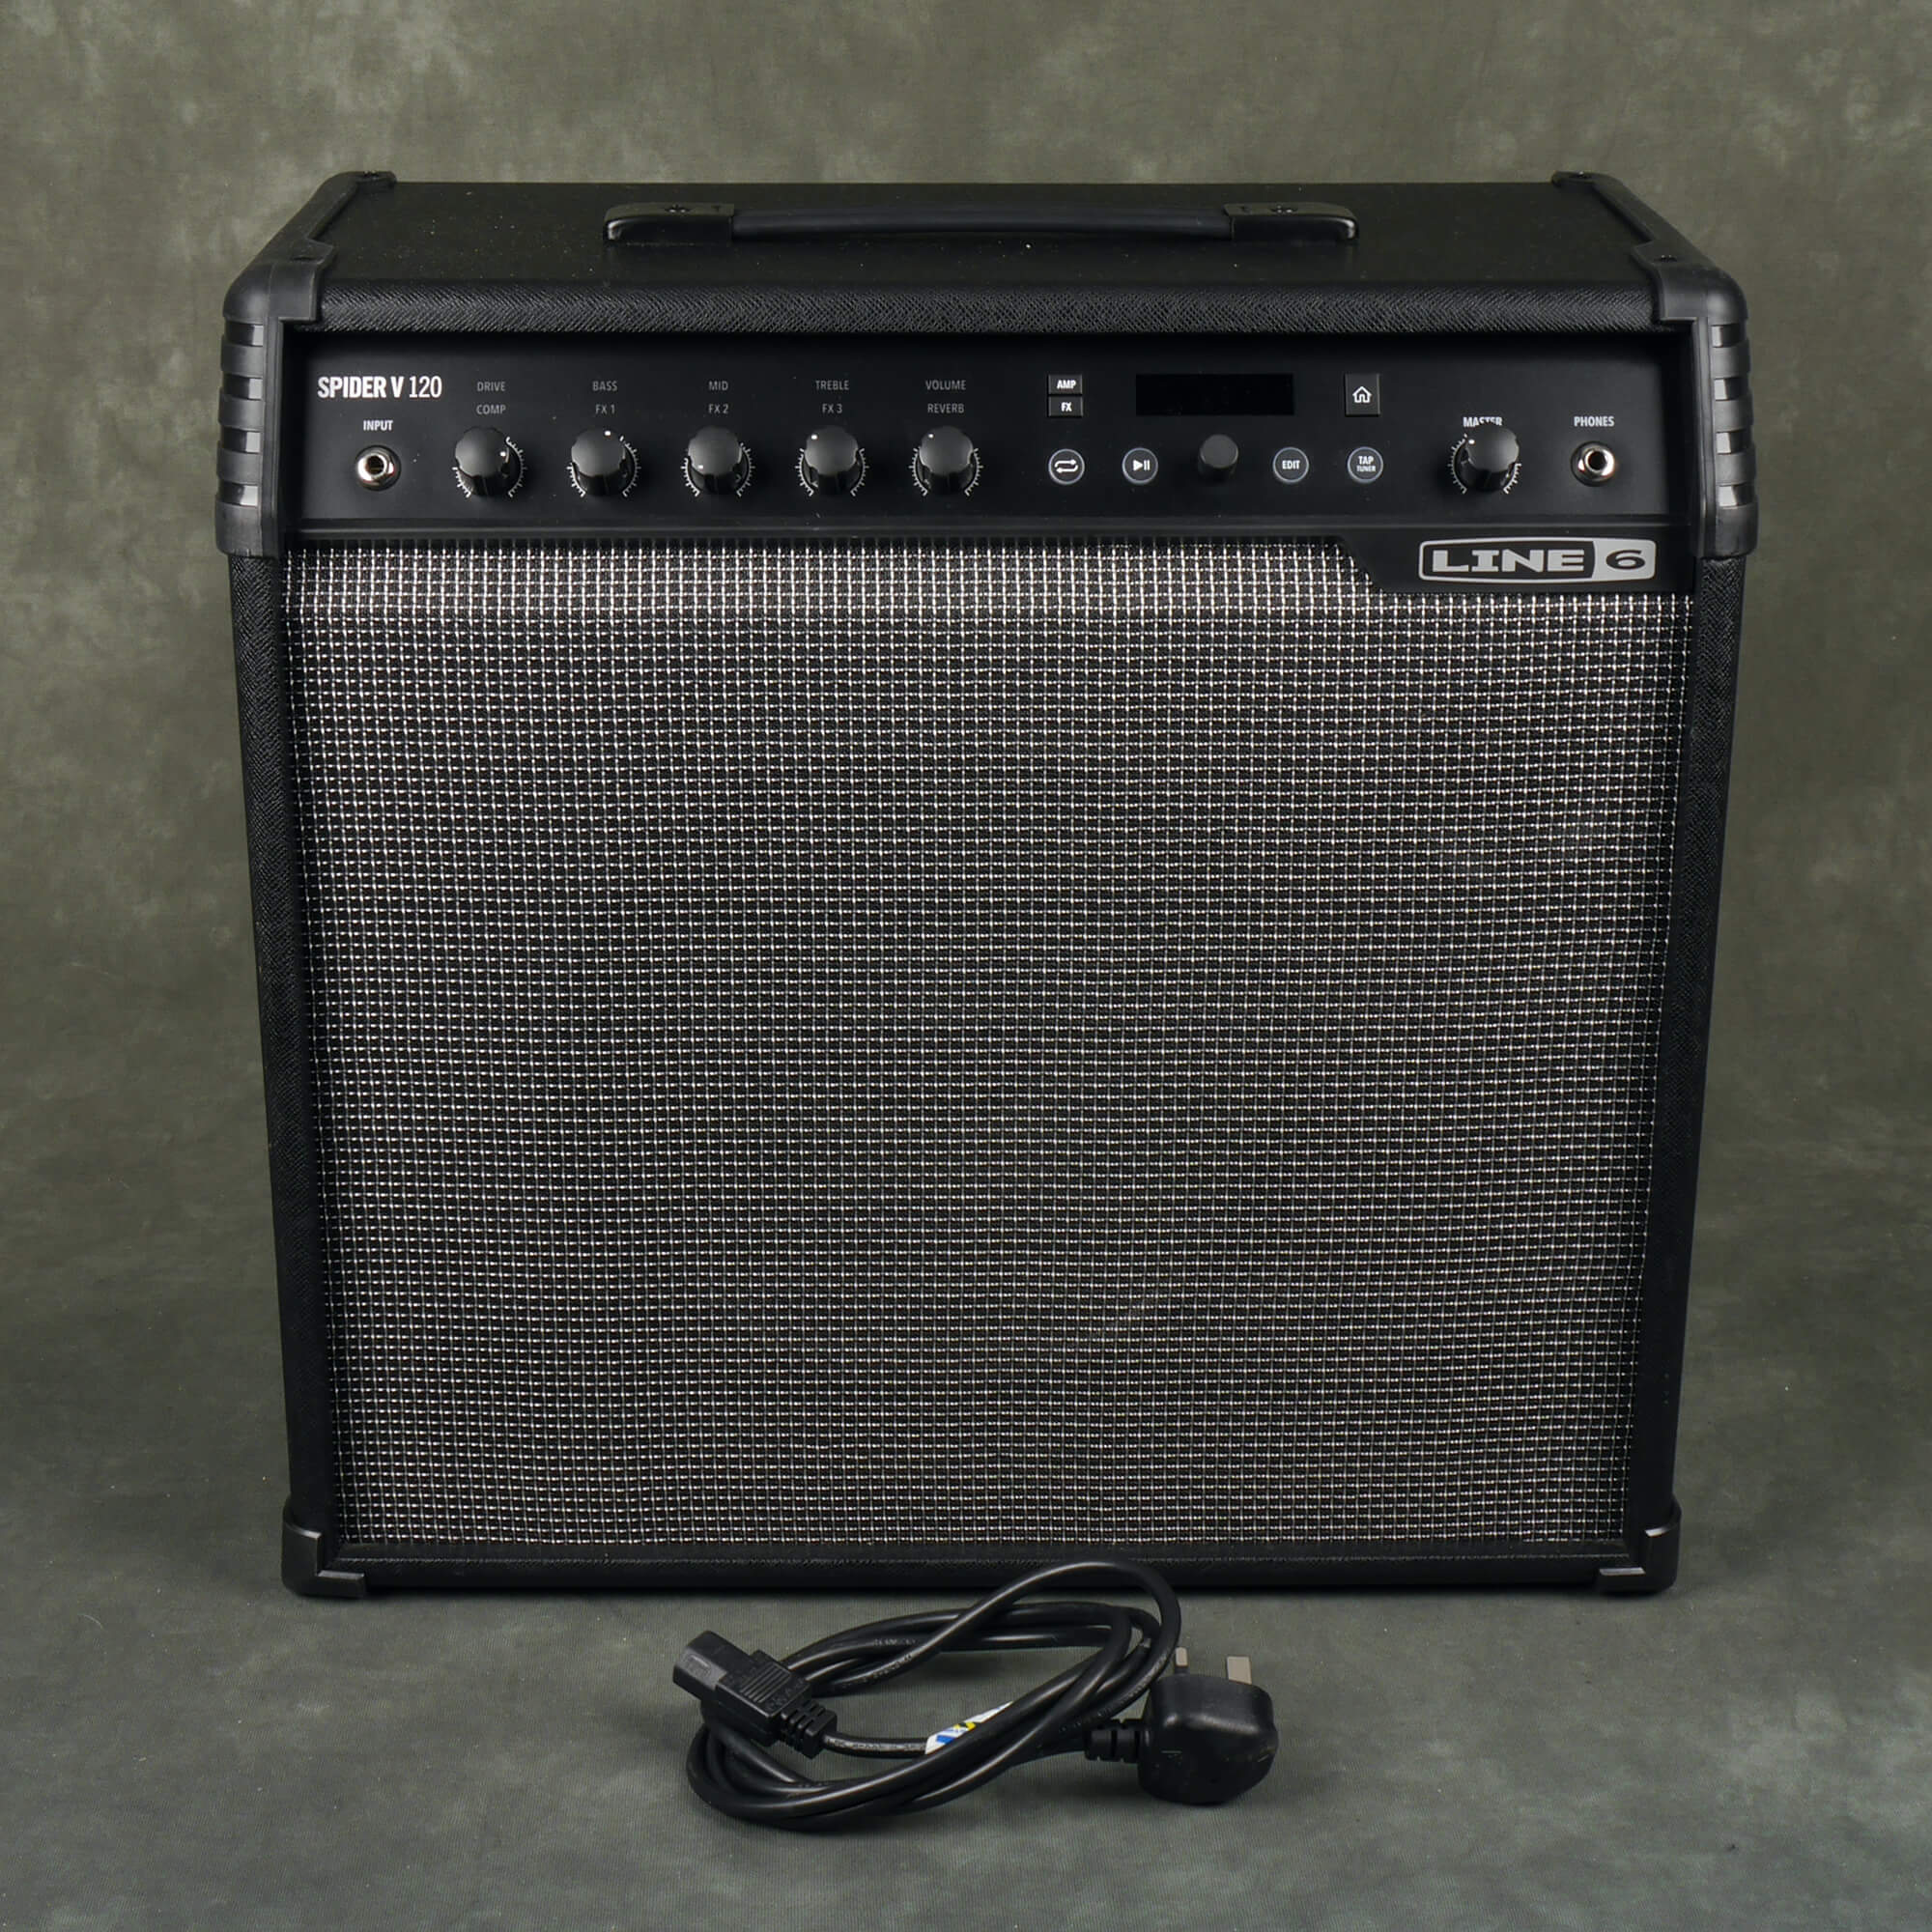 Line 6 Spider V 120 Combo Guitar Amplifier - 2nd Hand